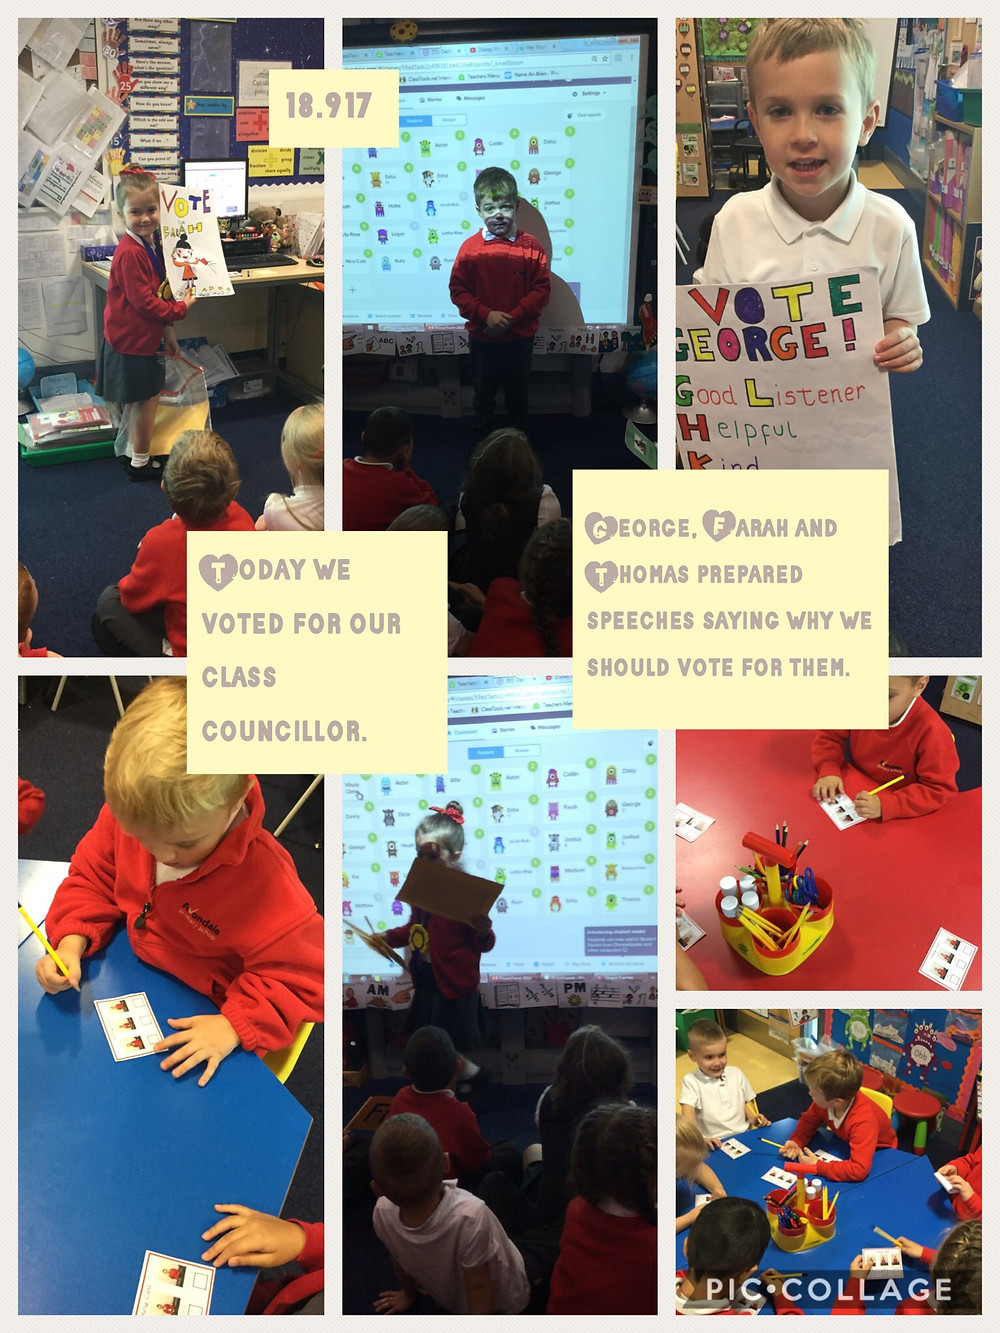 We have been voting for a friend in our class to be our class councillor.